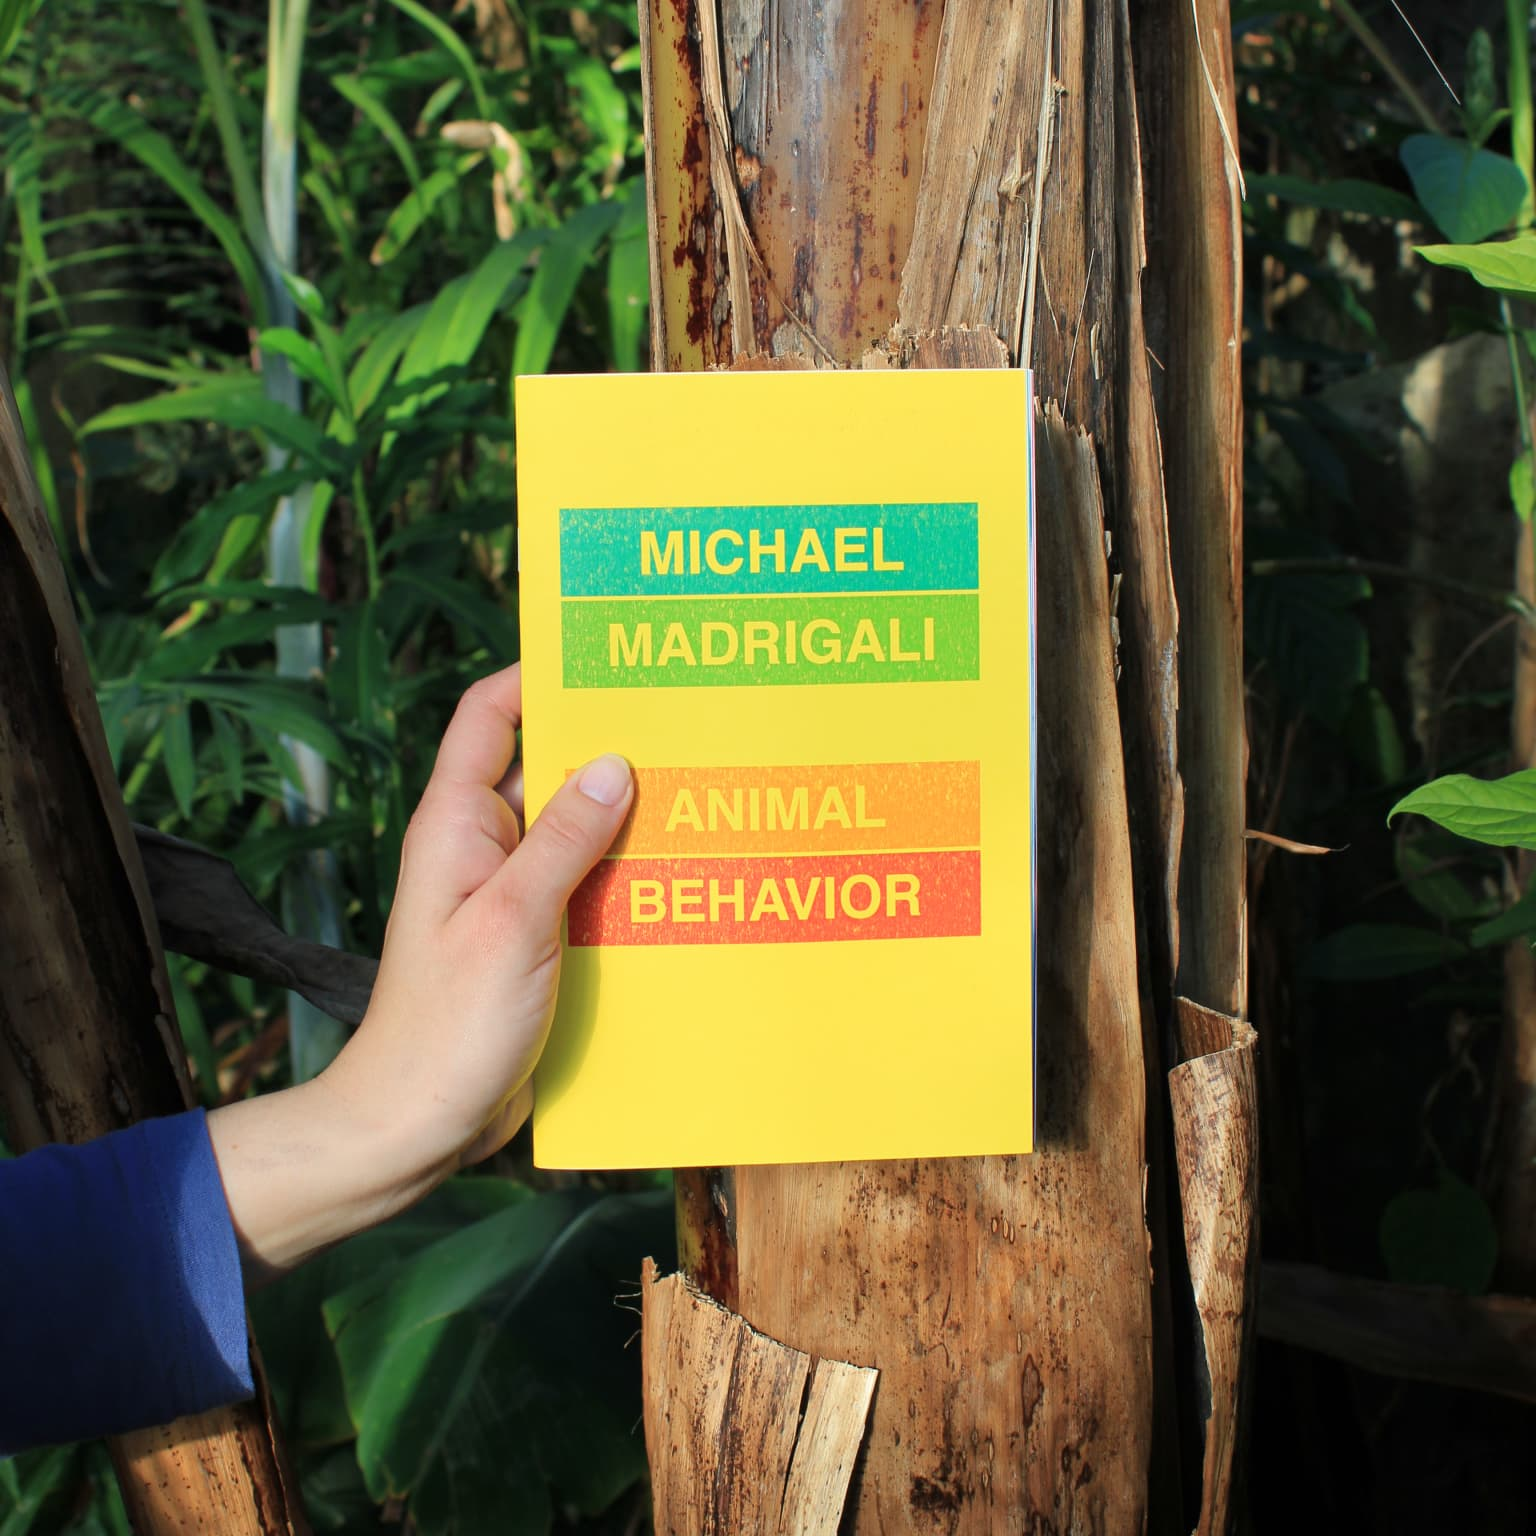 ANIMAL BEHAVIOR - Michael Madrigali